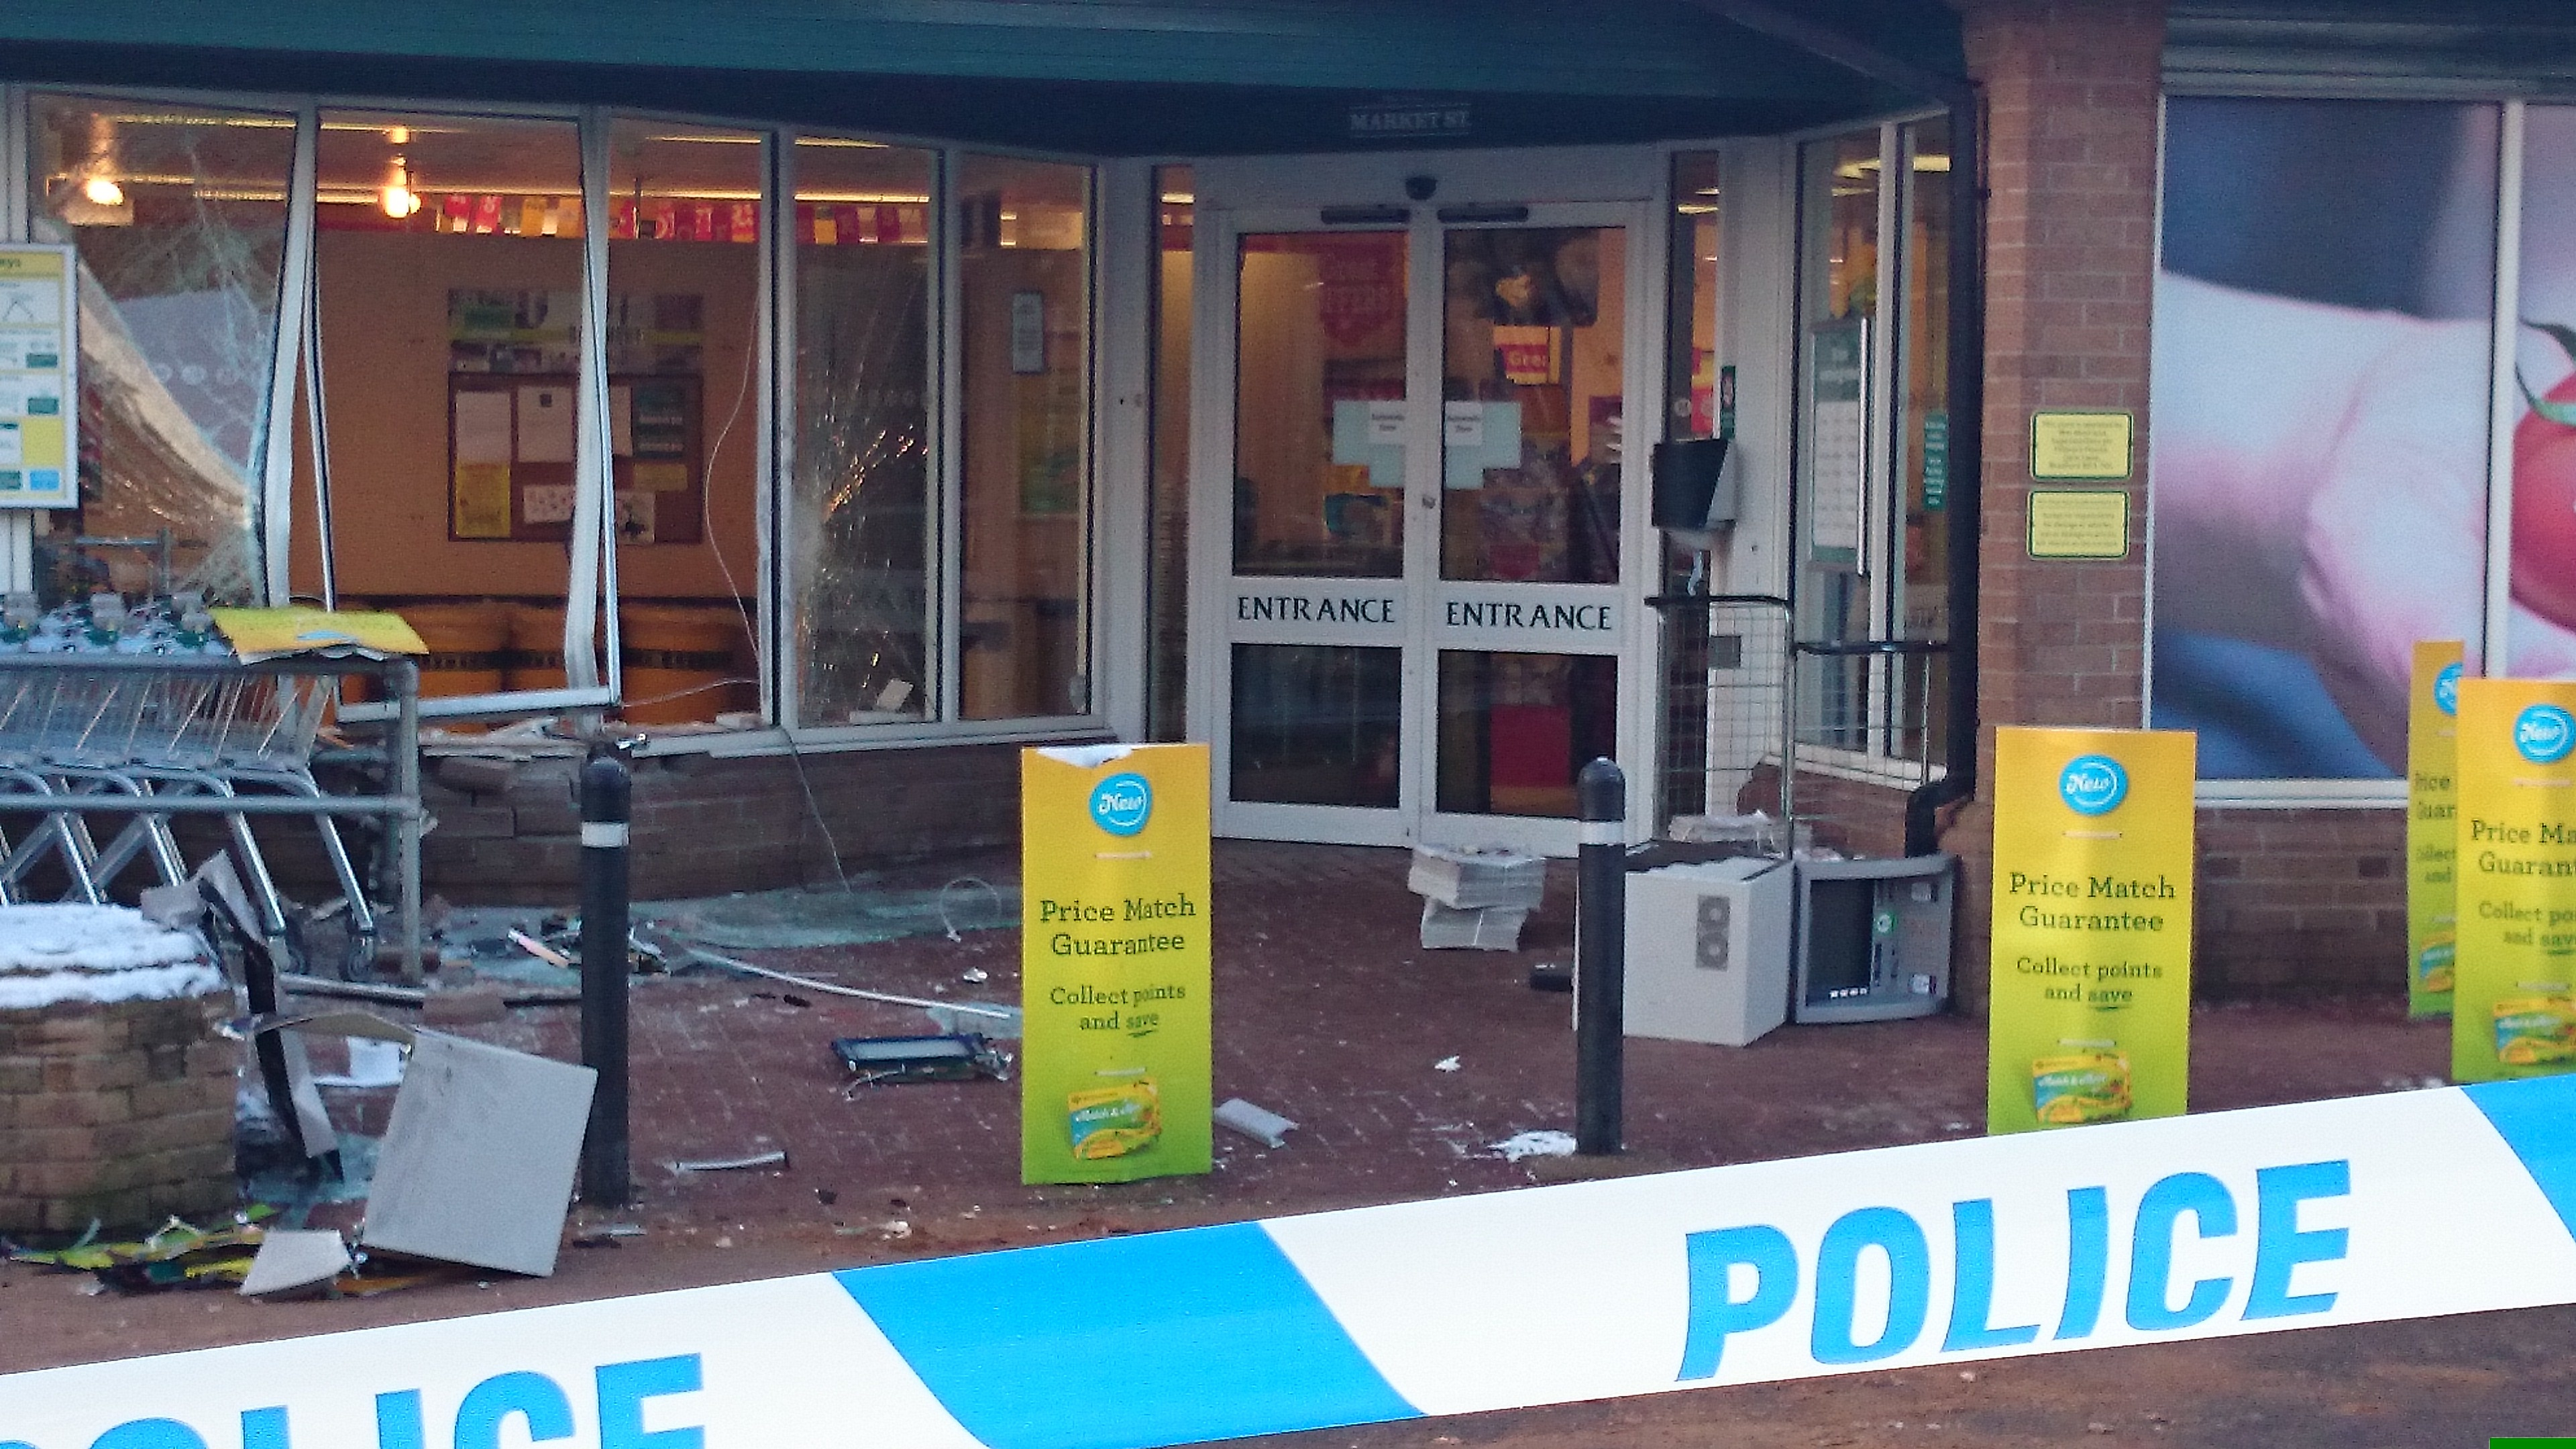 The ATM theft at Morrisons in Banchory